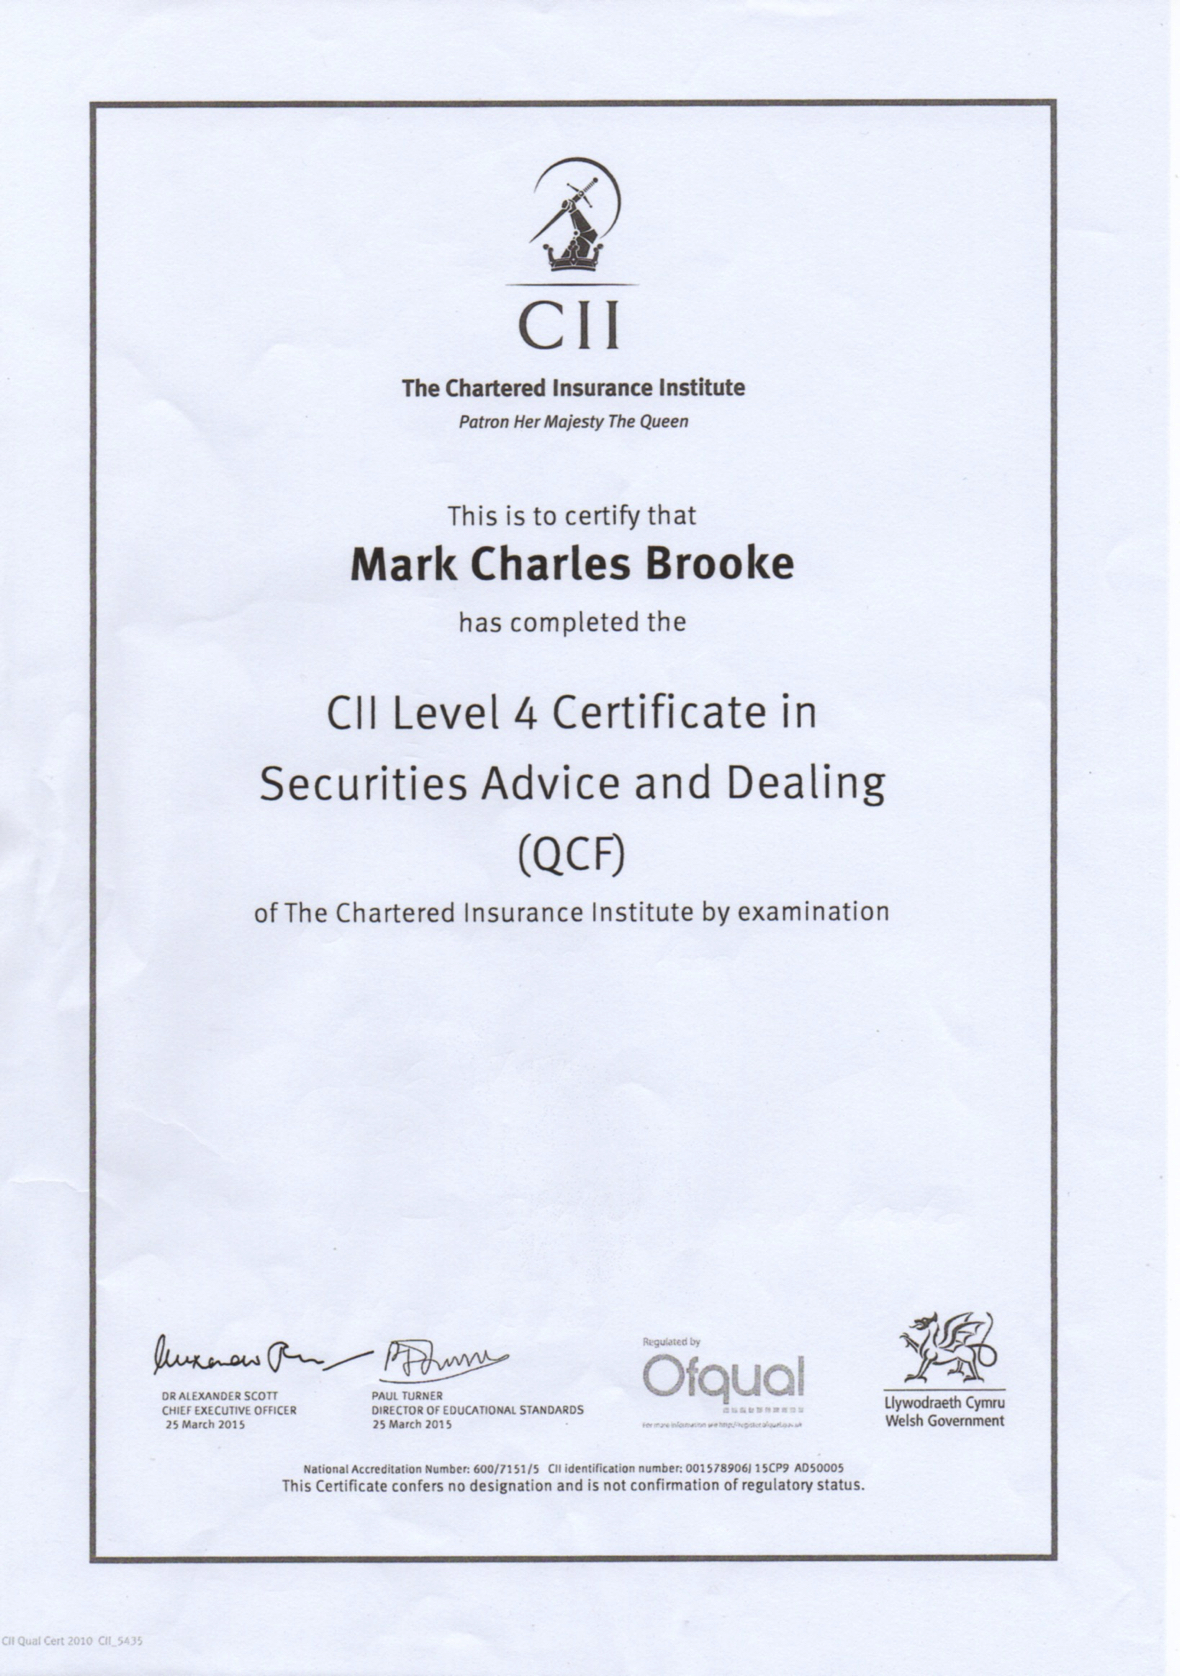 CII-Securites-Advice-and-Dealing-Level-4-QCF-for-Mark-Brooke-2016-09-09